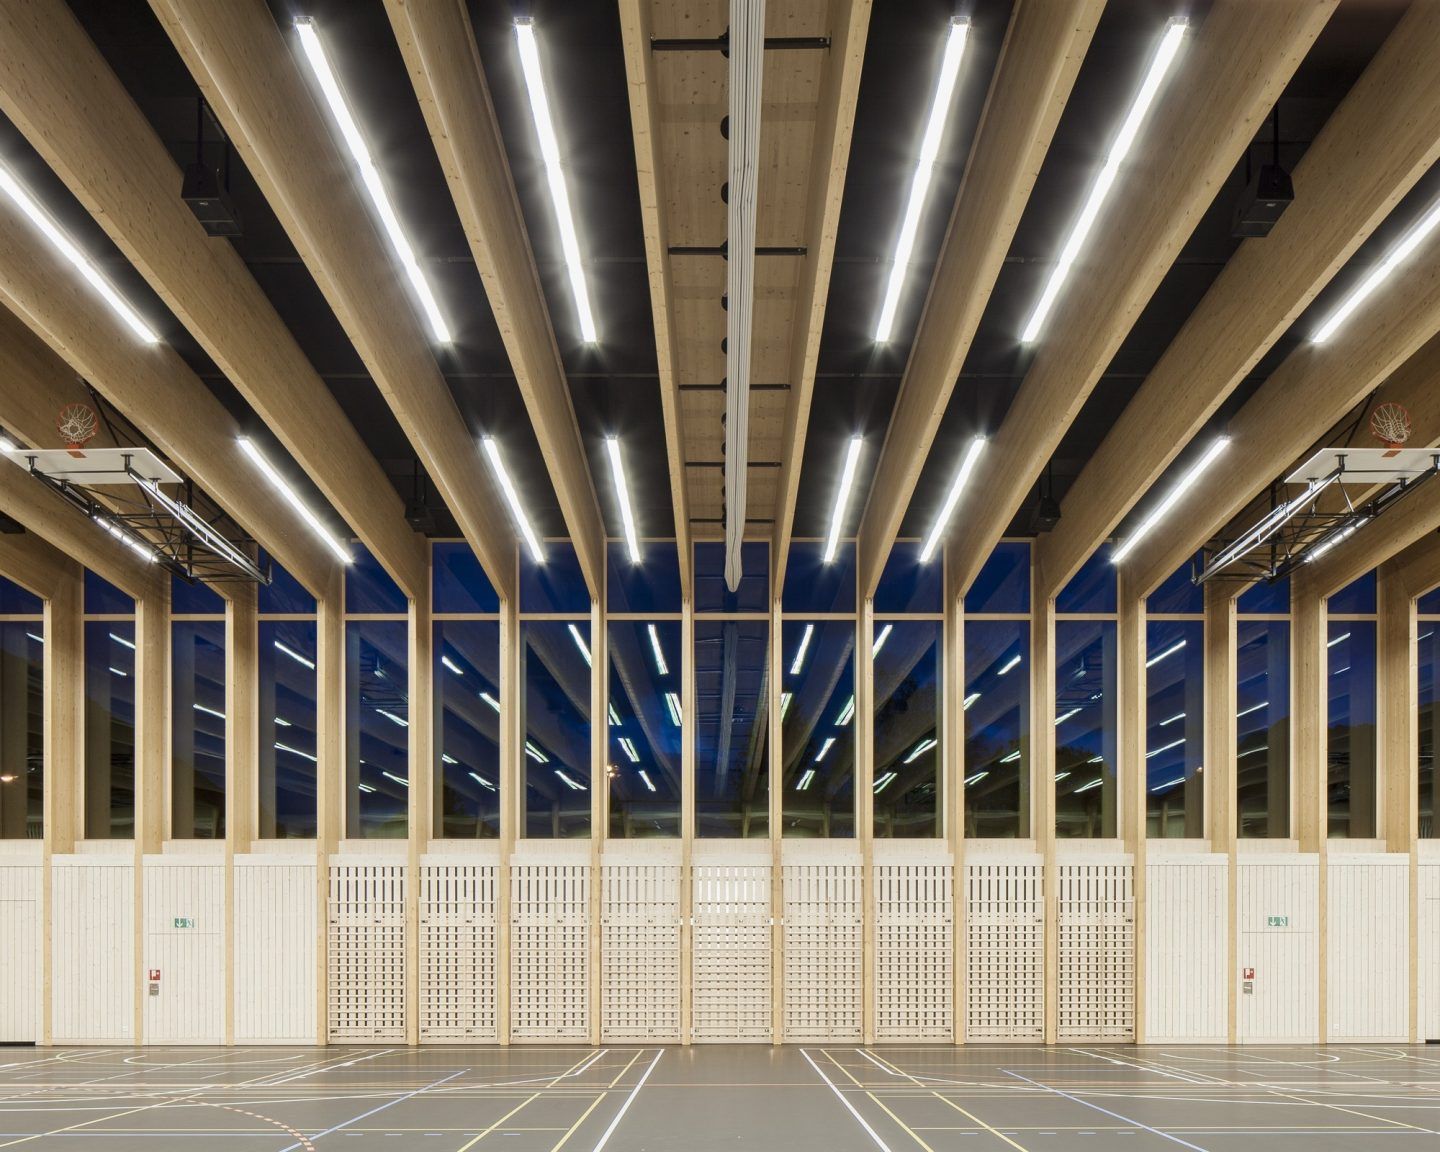 Sports Center Sargans, Sargans. Hildebrand Studios AG, Architecture and Urban Design in Zurich, Switzerland